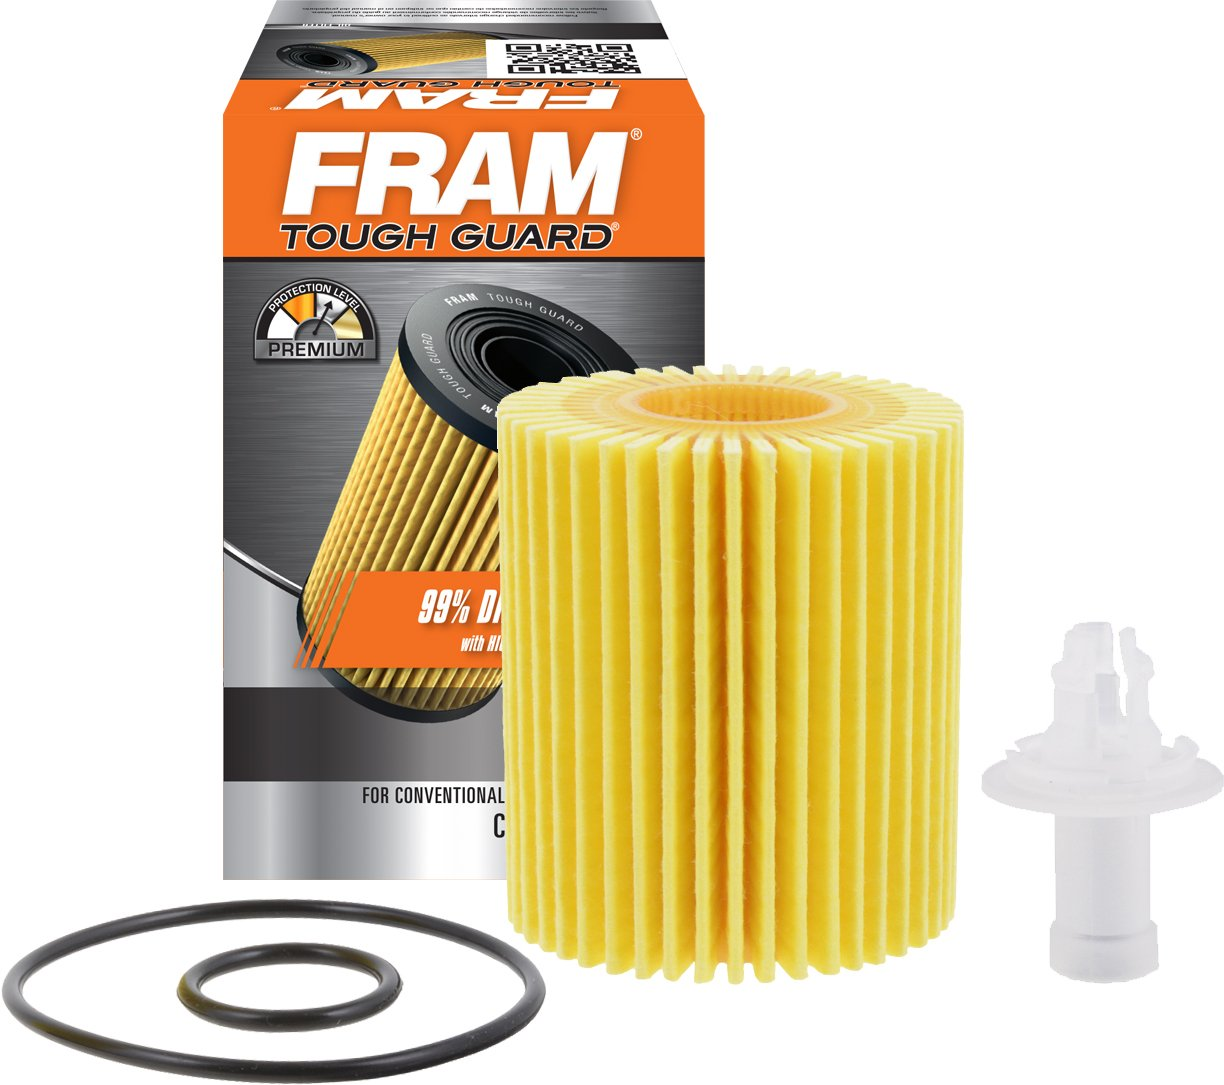 FRAM TG10158 Tough Guard Full-Flow Cartridge Oil Filter TG10158-1